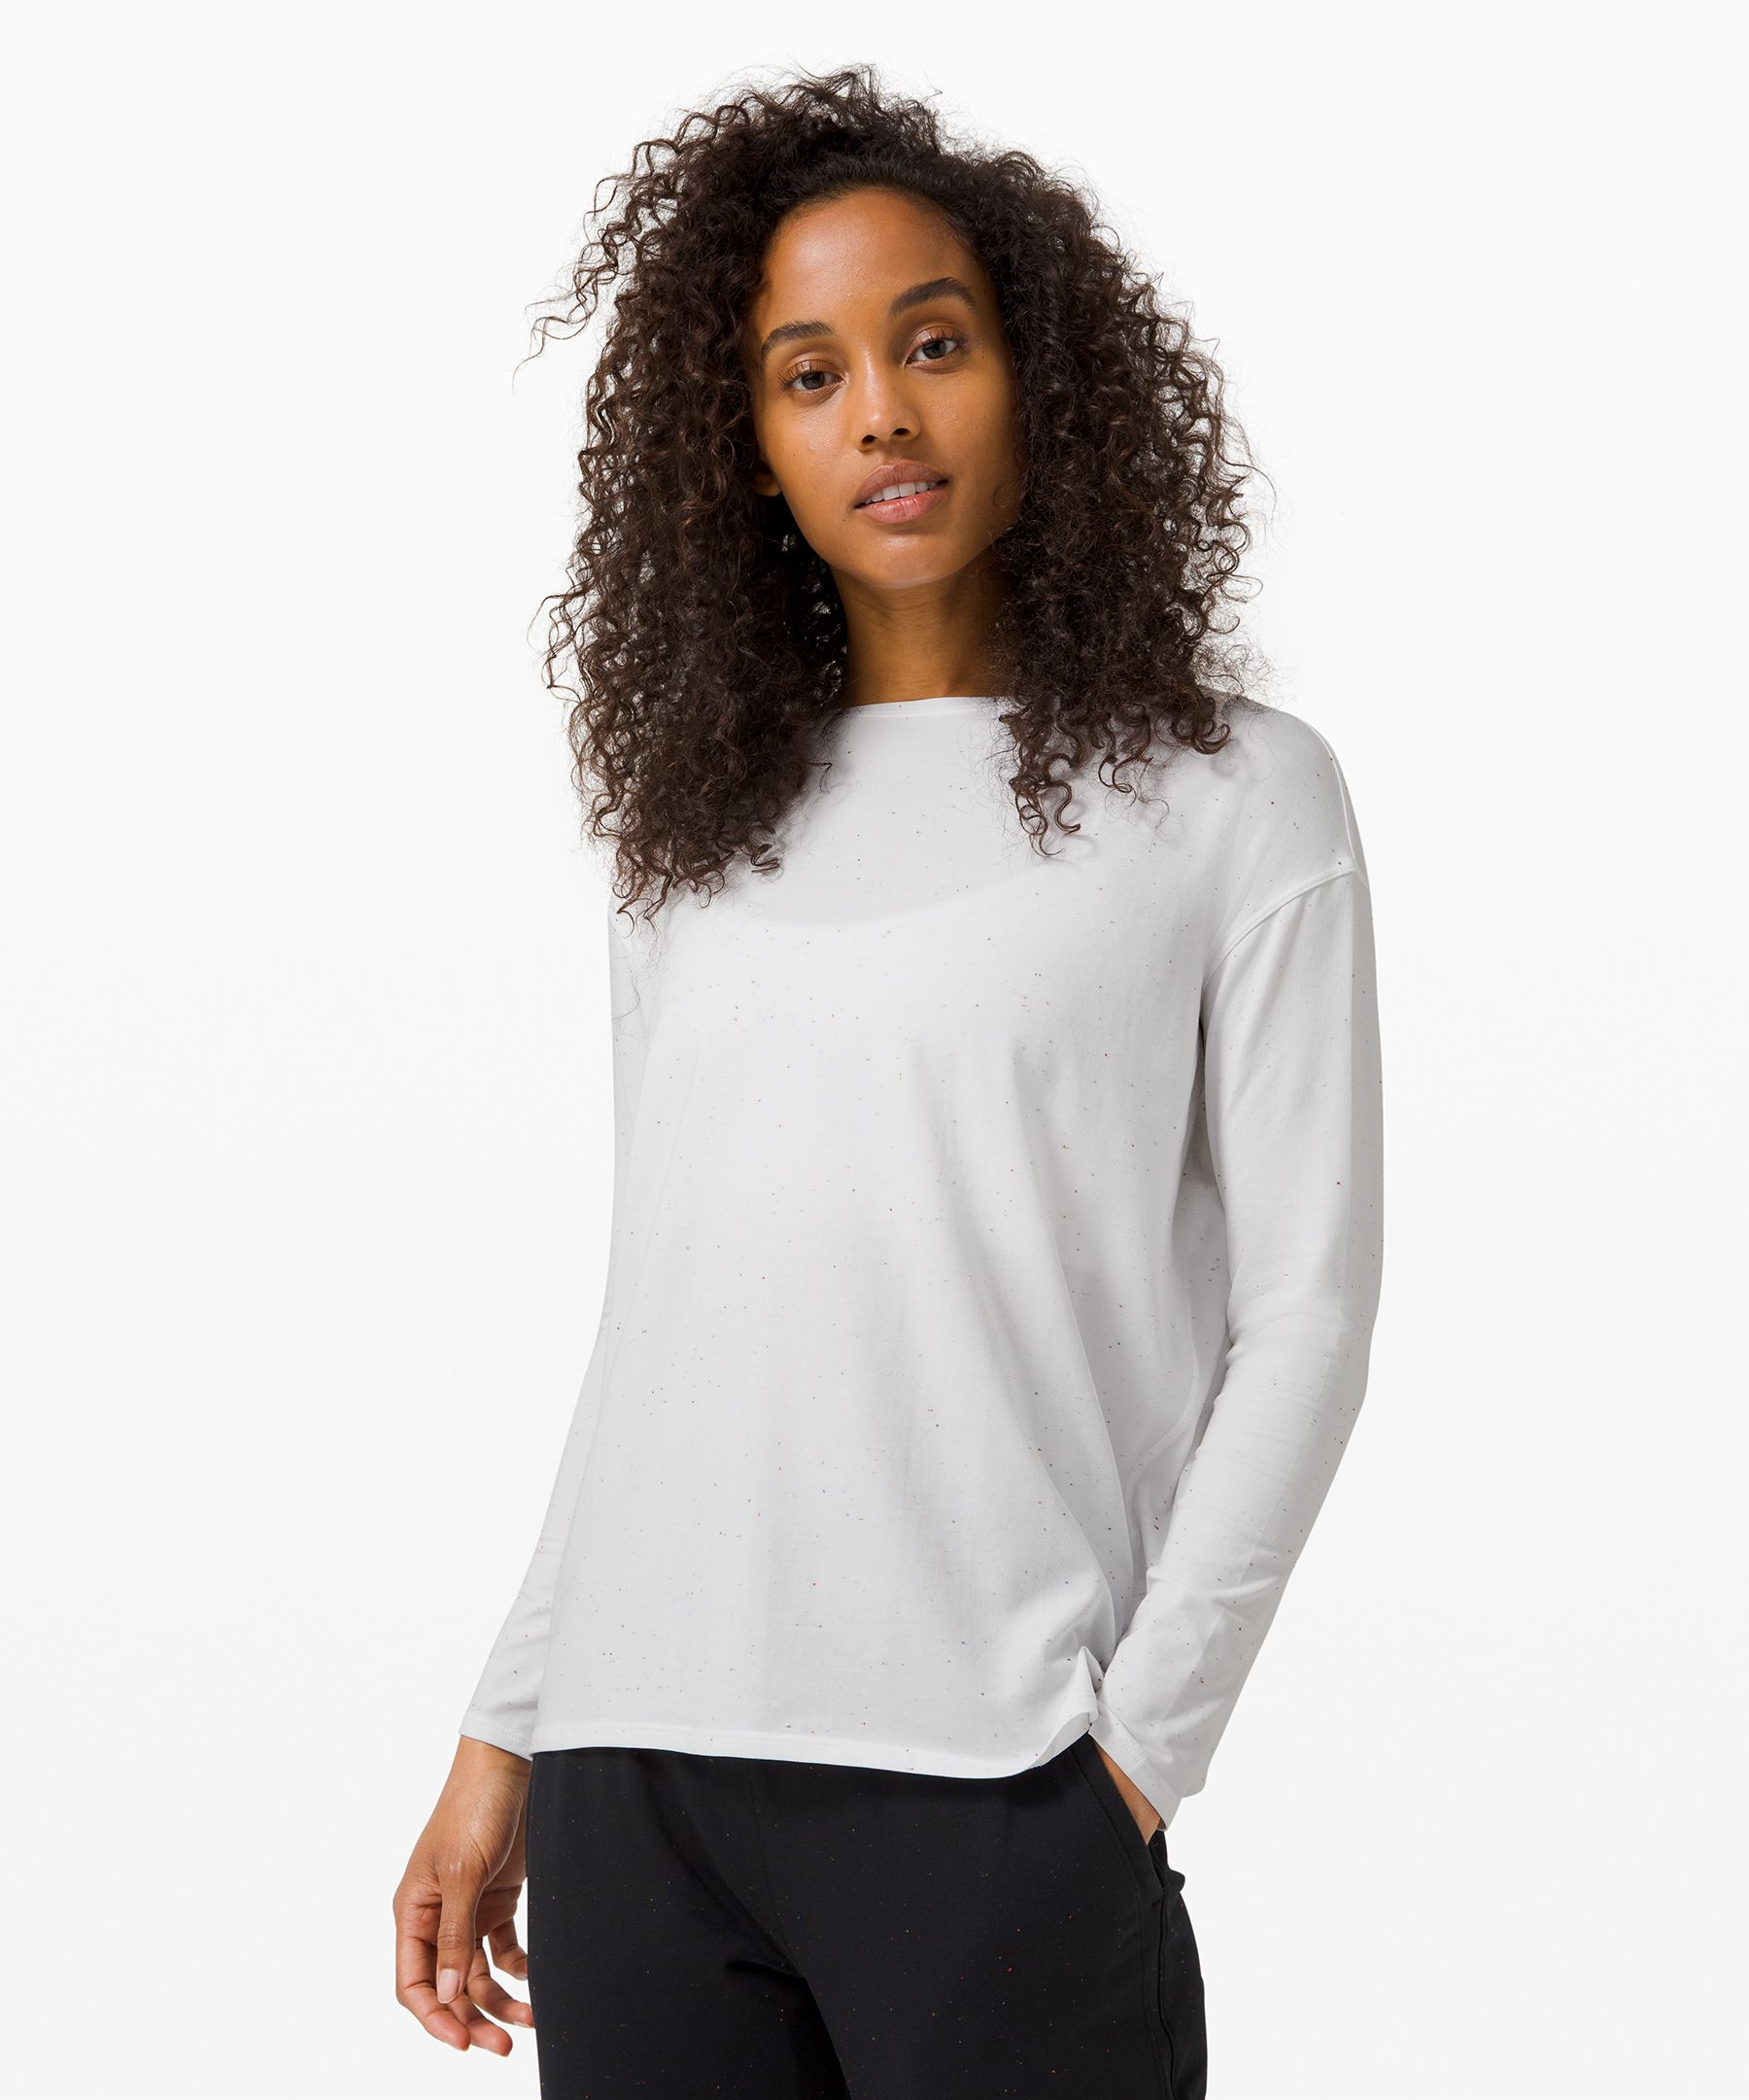 A reputation, a vibe, a way of life. Designed in LA for you. This super-soft and breathable top will help keep you cool and comfortable after studio sessions.